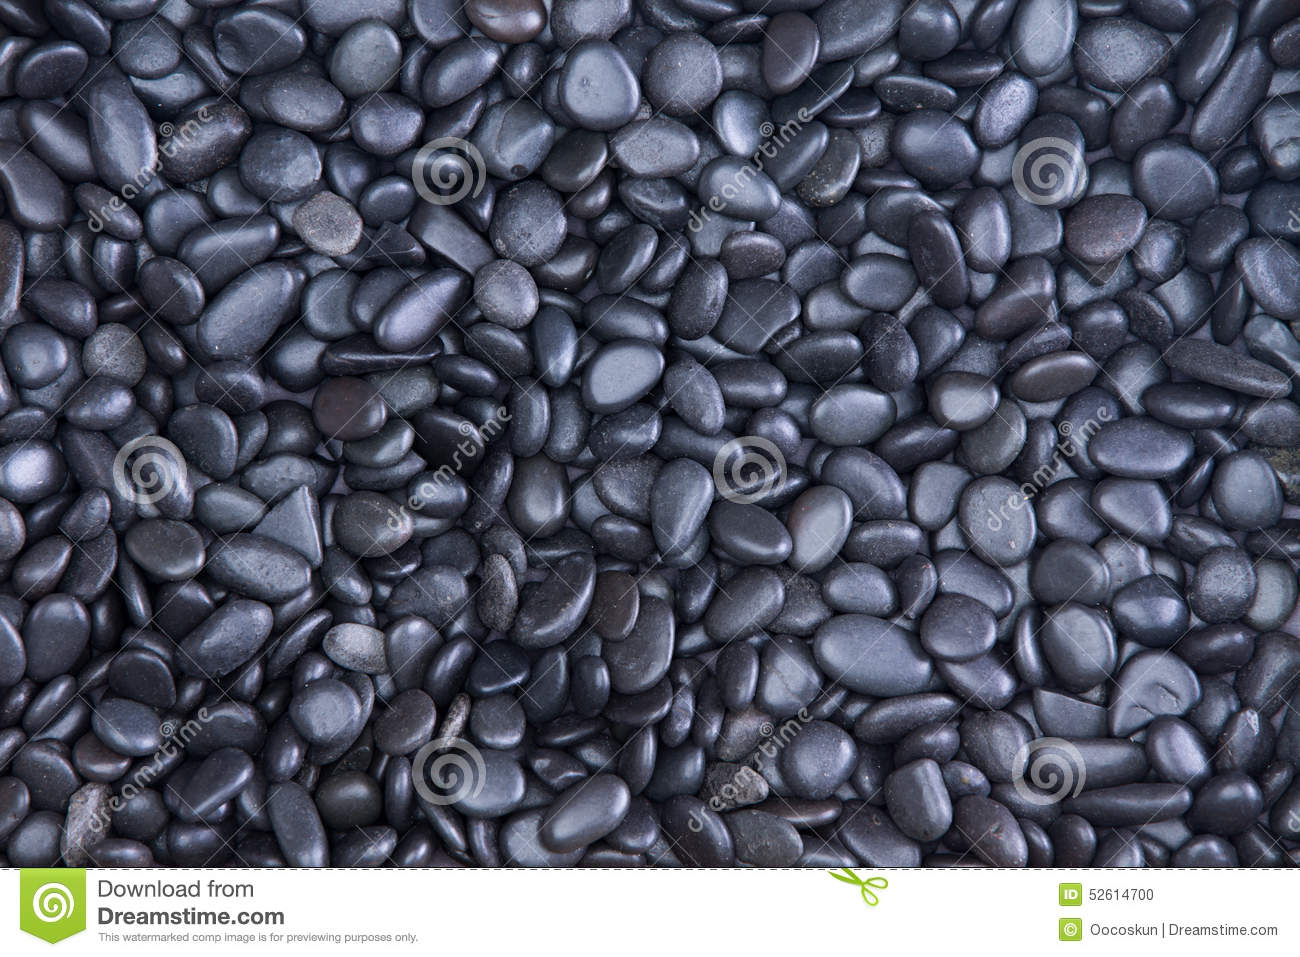 Ordinaire Download Background Texture Of Waterworn Black Pebbles Stock Photo   Image  Of Igneous, Pattern: